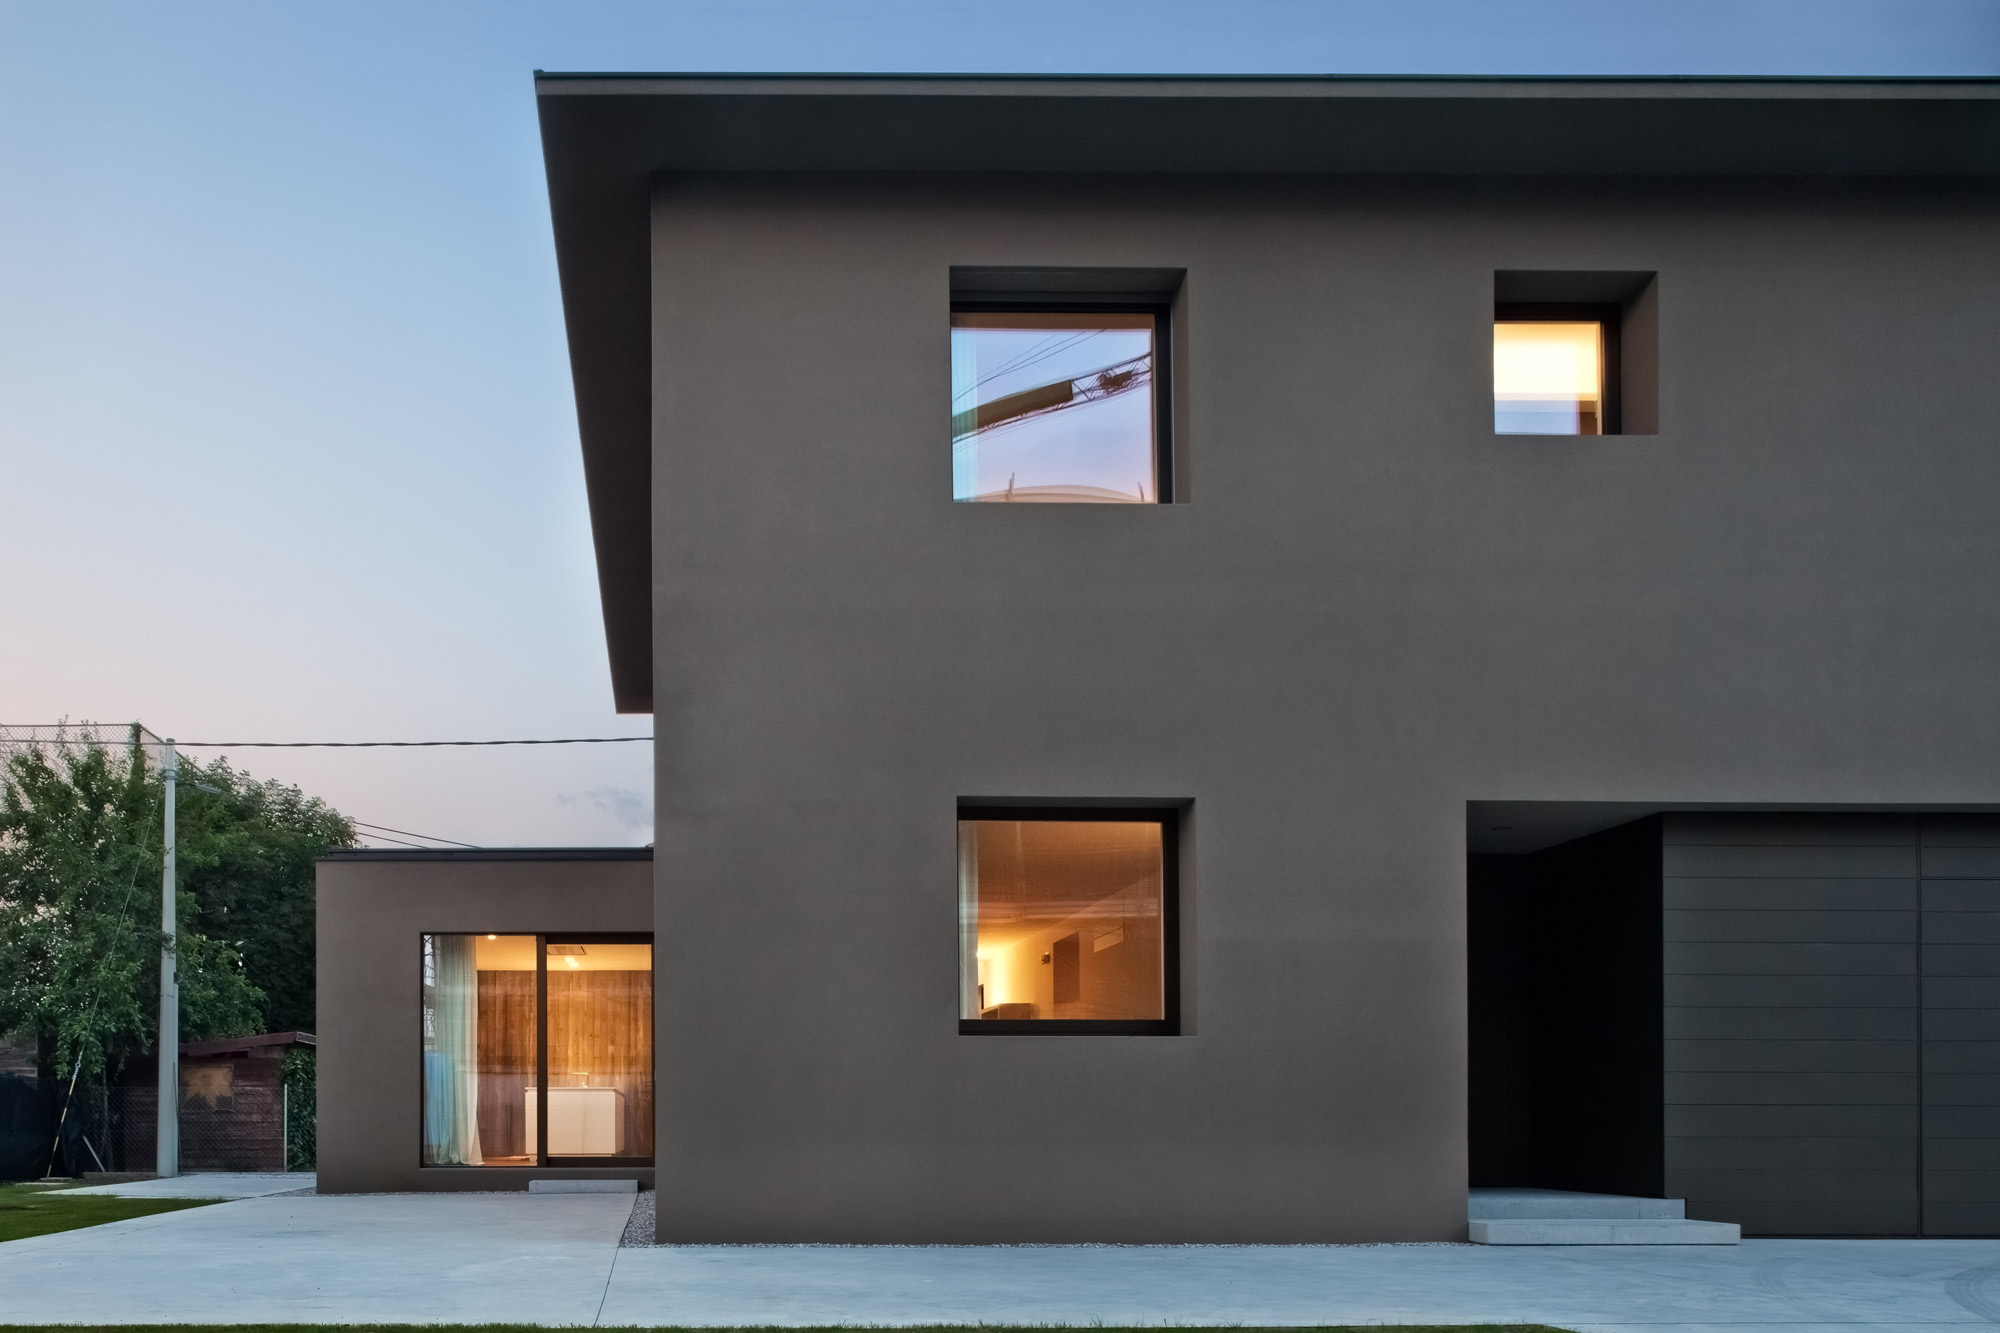 Mide architetti house revamp and extension in abano terme for Log casa architetti